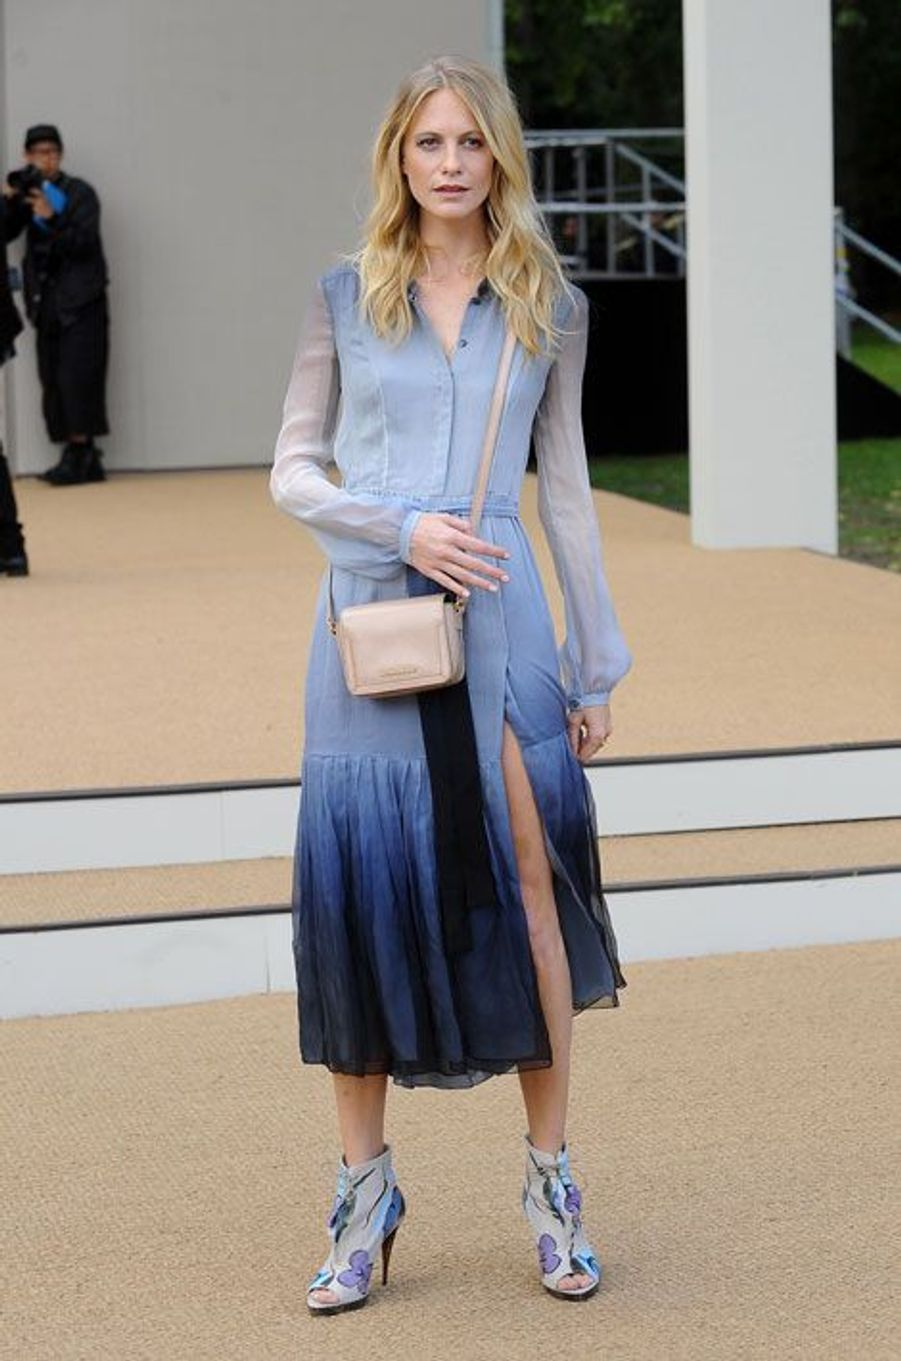 La it-girl britannique Poppy Delevingne assiste au défilé printemps-été 2015 Burberry Prorsum dans une tenue de la griffe, lors de la Gashion We...